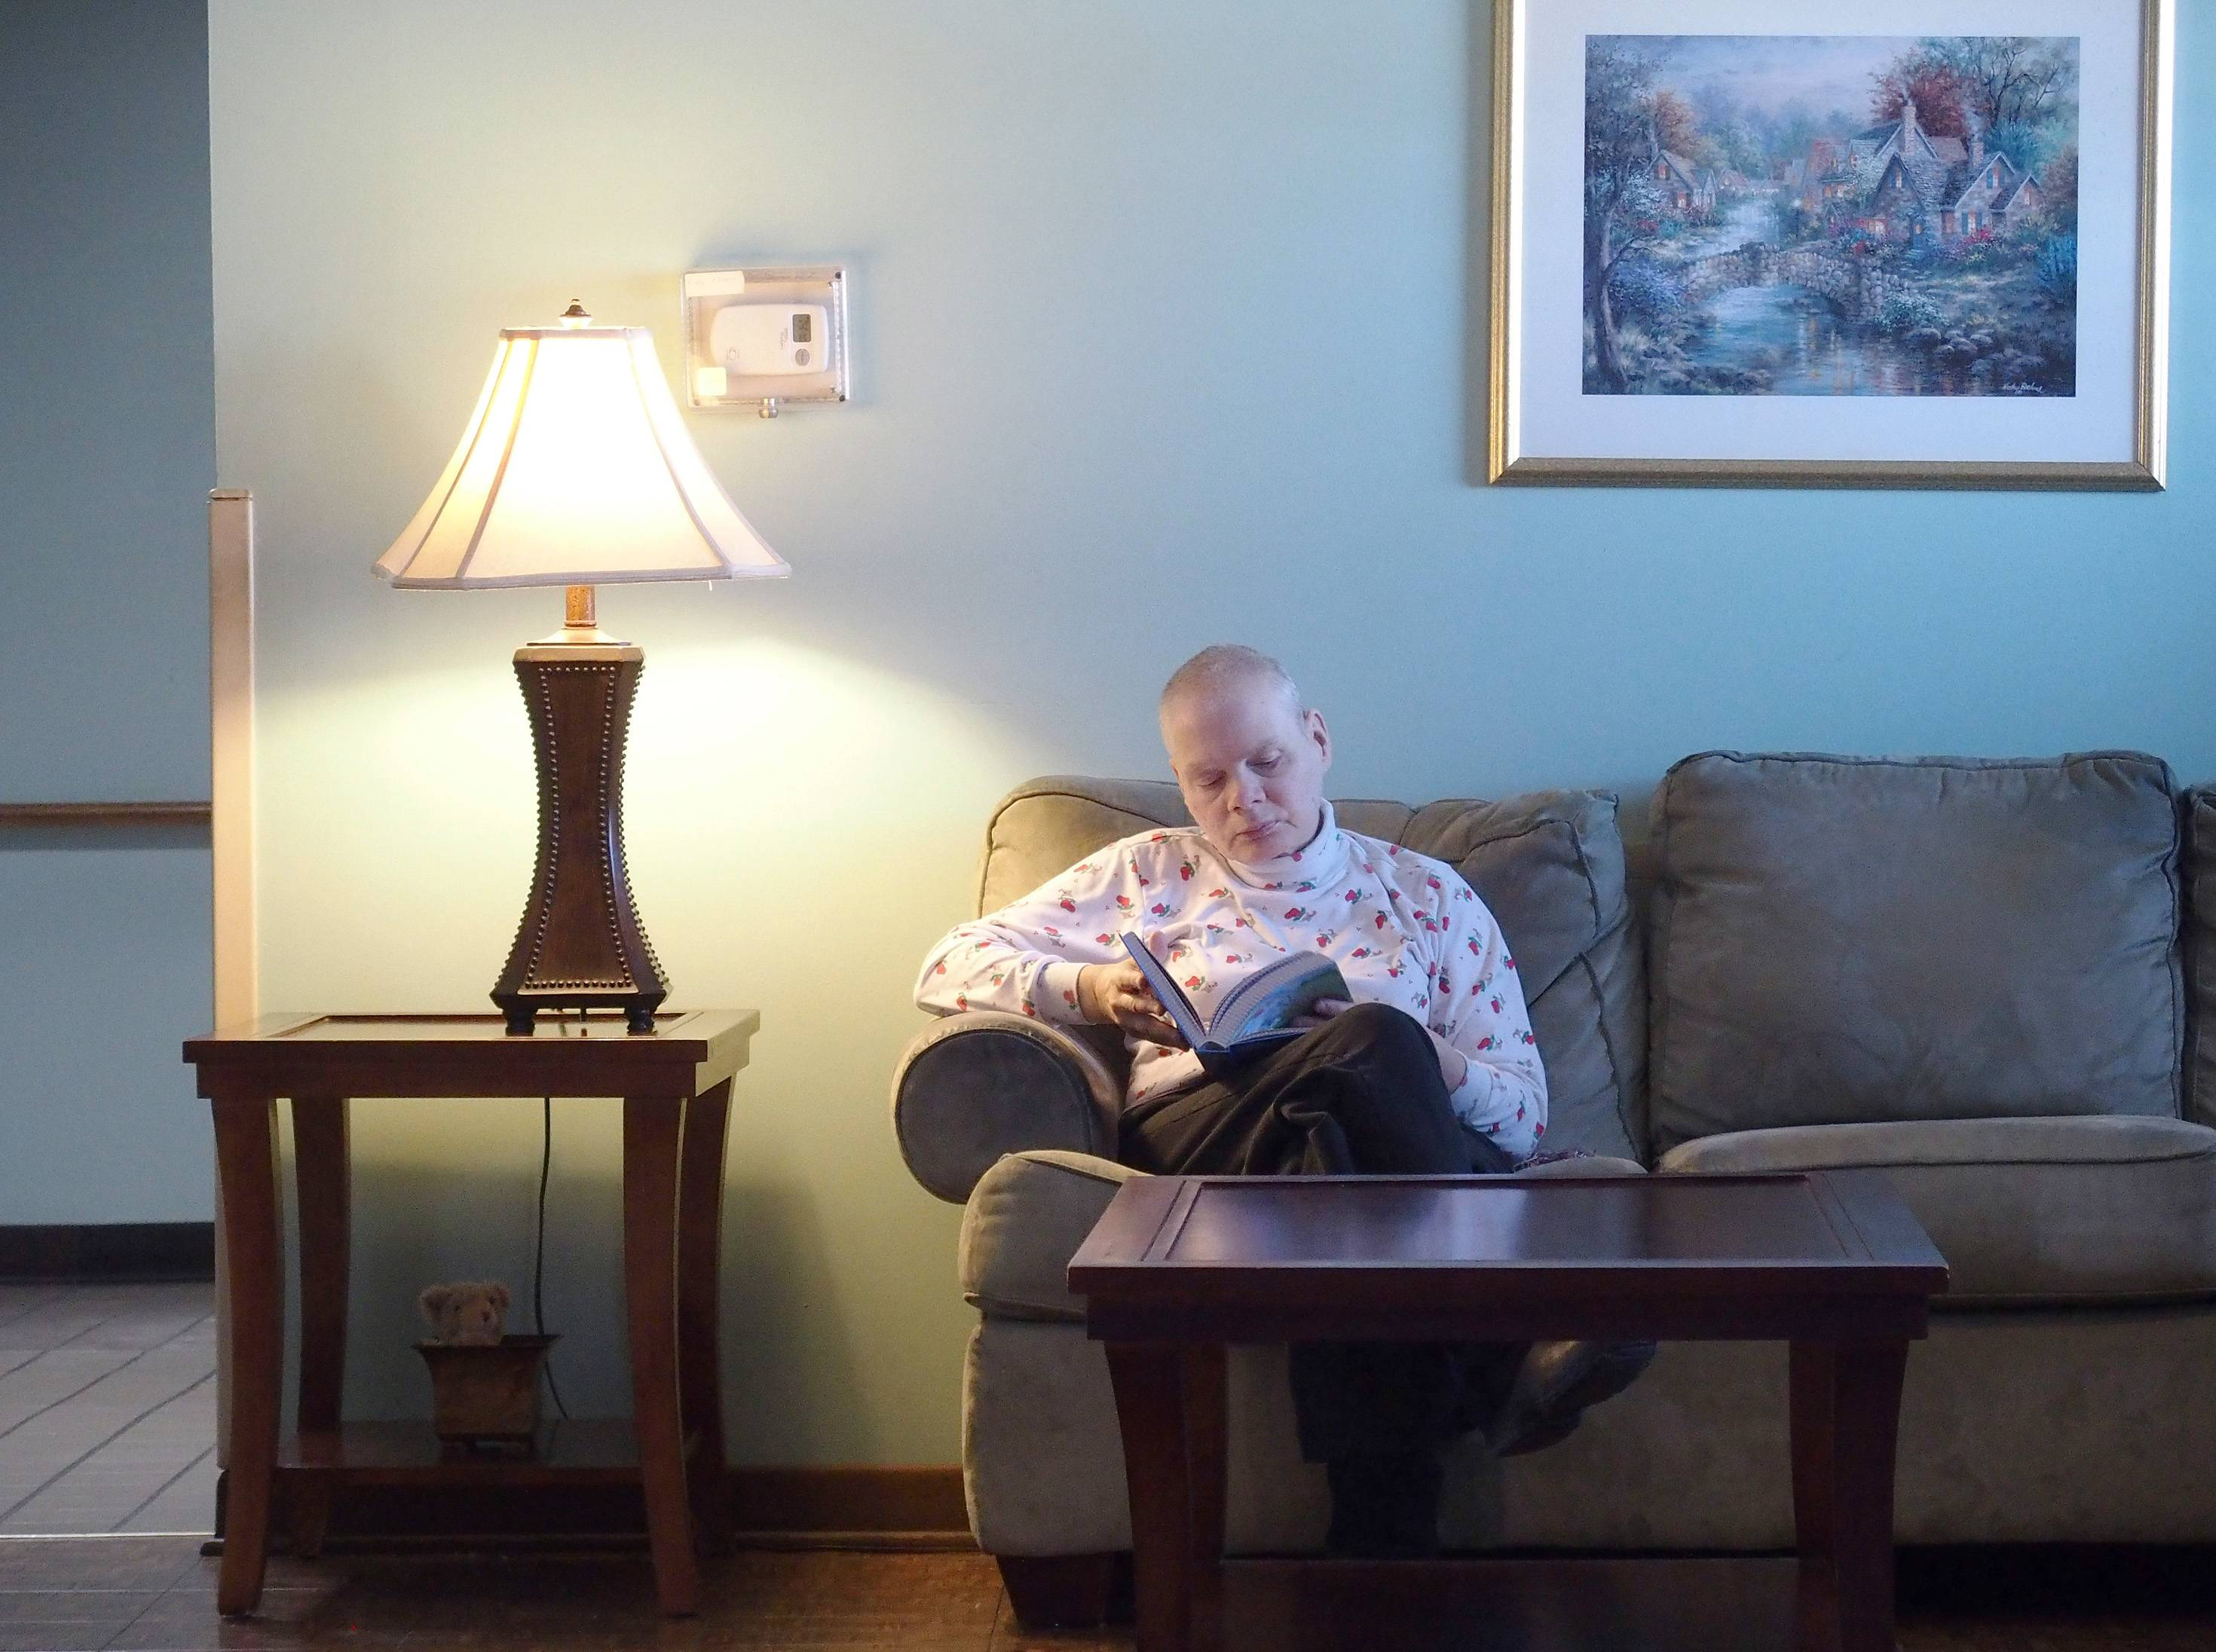 Resident Sherry Ubert, who has lived at the Deicke Home in Lombard for 30 years, spends some quiet time alone with her Bible in the home's living room.